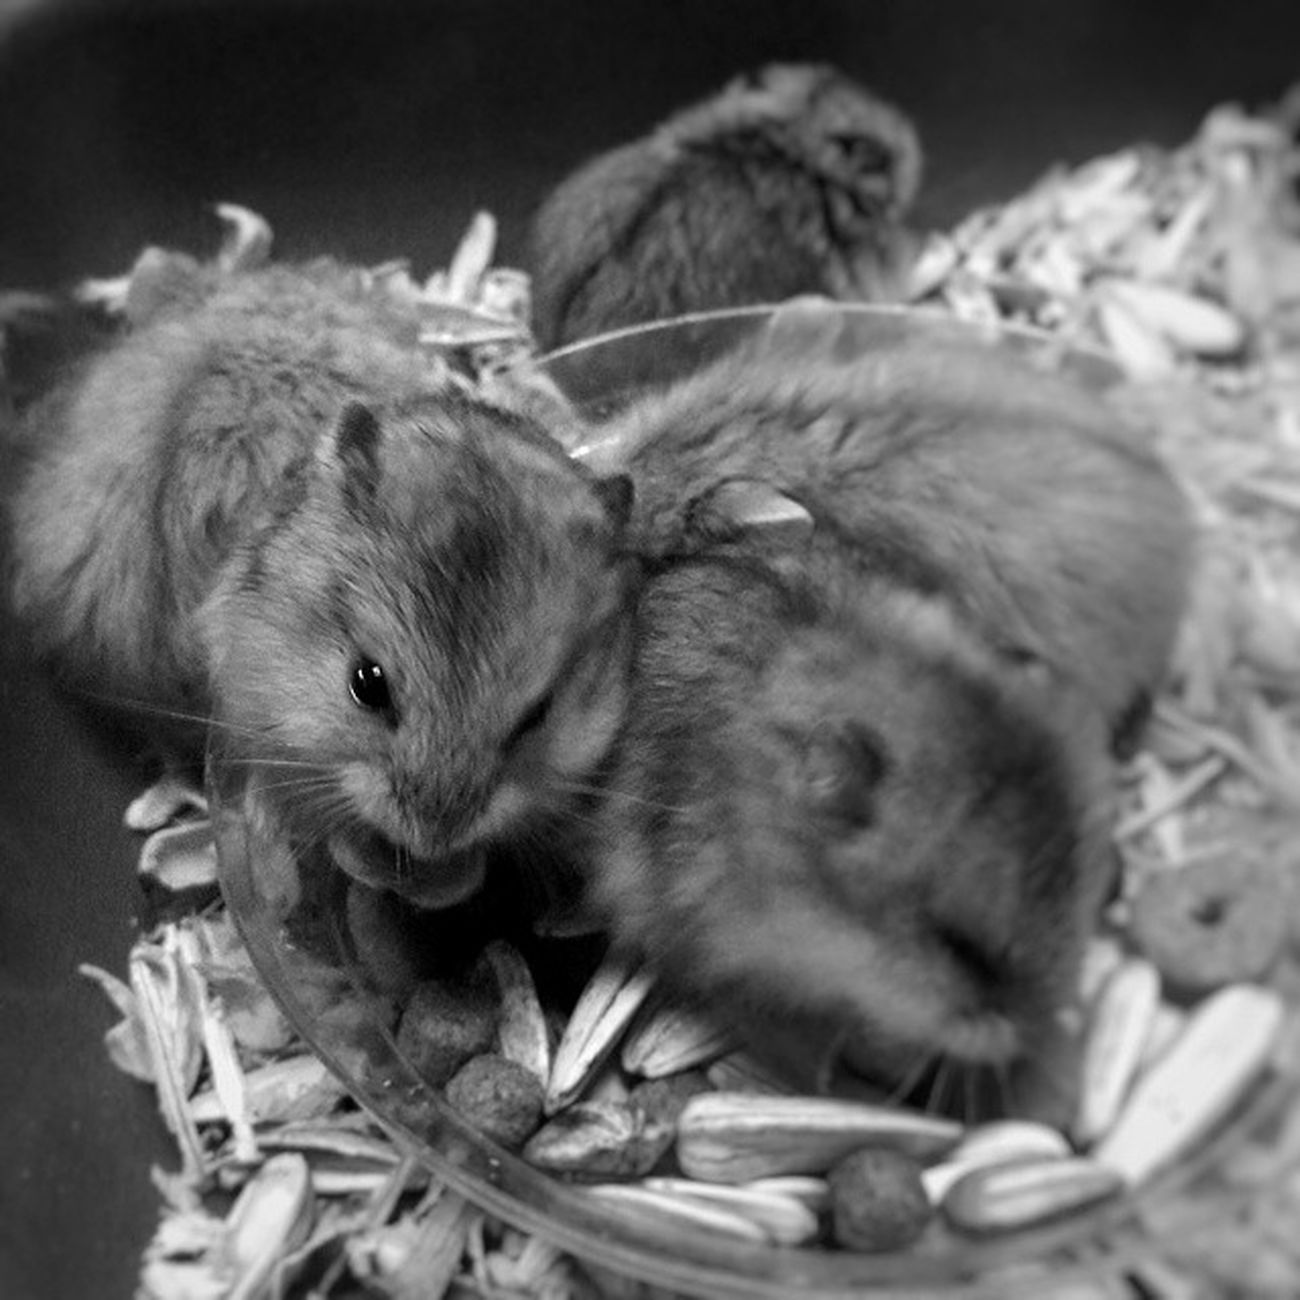 Furball. Morning Morningactivity POTD Thursday breakfast seeds nuts hamster hamsters babyhamsters babyanimals pet fluffy blackandwhite blackandwhitephotography colorless world_bnw bw_awards insta_bw bnw_planet ae_bnw bnw bnw_society bwstyles_gf bnw_diamond bnw_life rsa_bnw